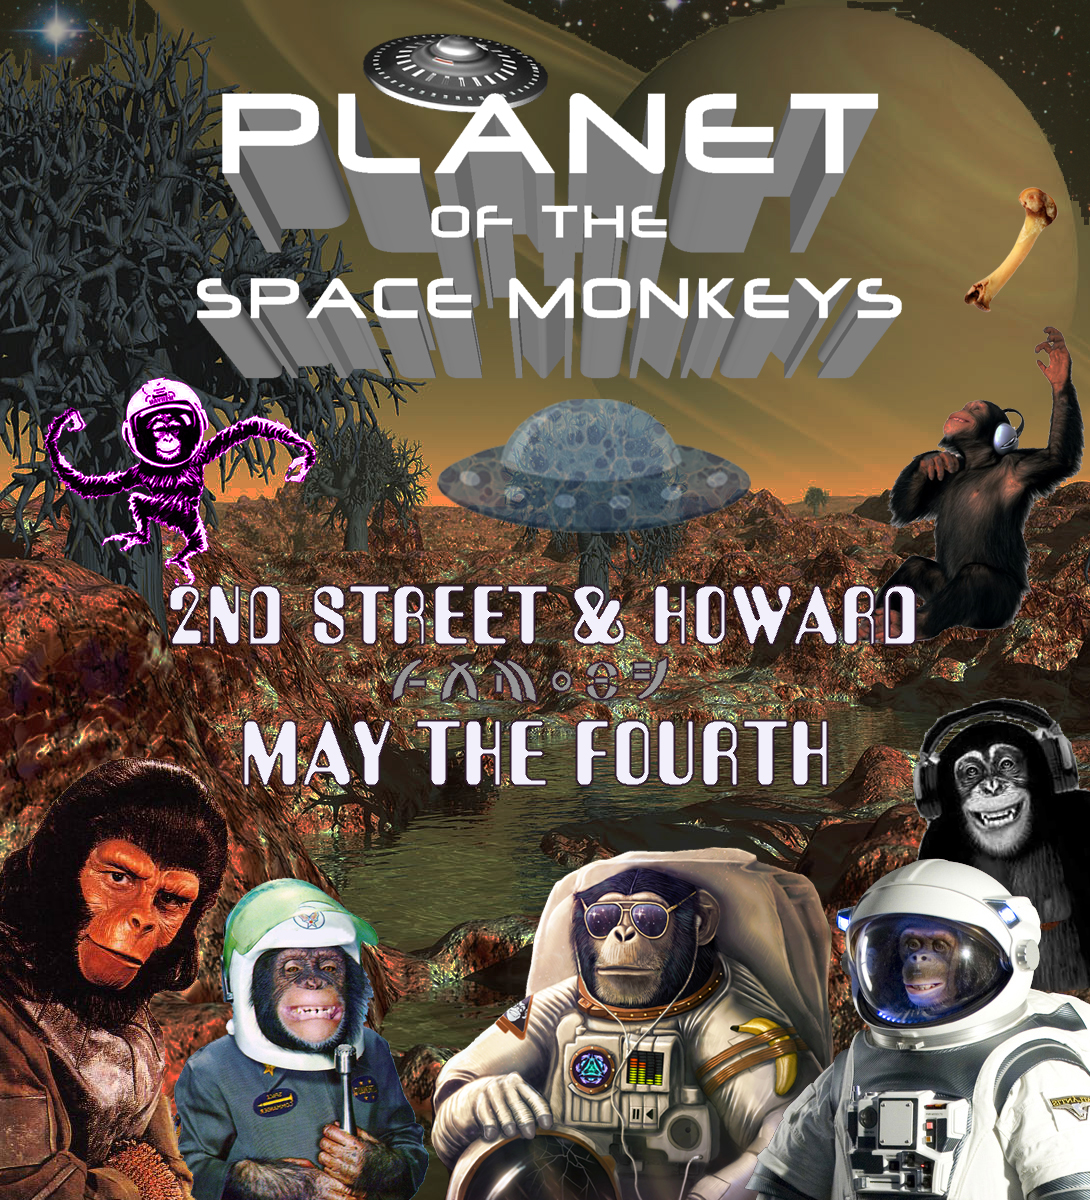 Planet of the Space Monkeys - How Weird 2014